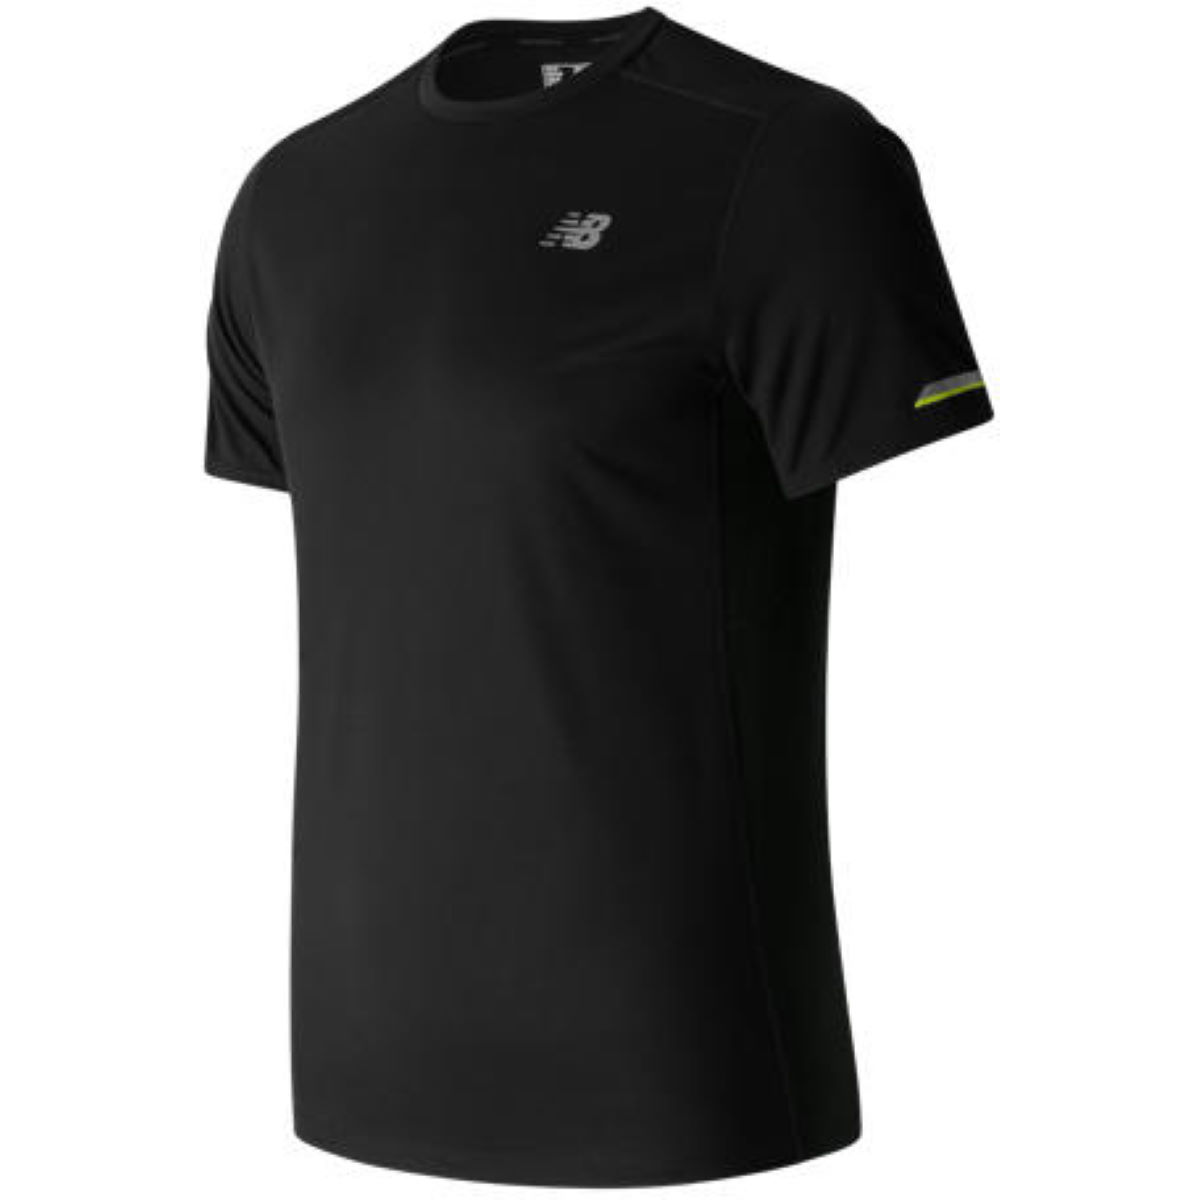 Maillot de running New Balance Ice (manches courtes) - S BLACK